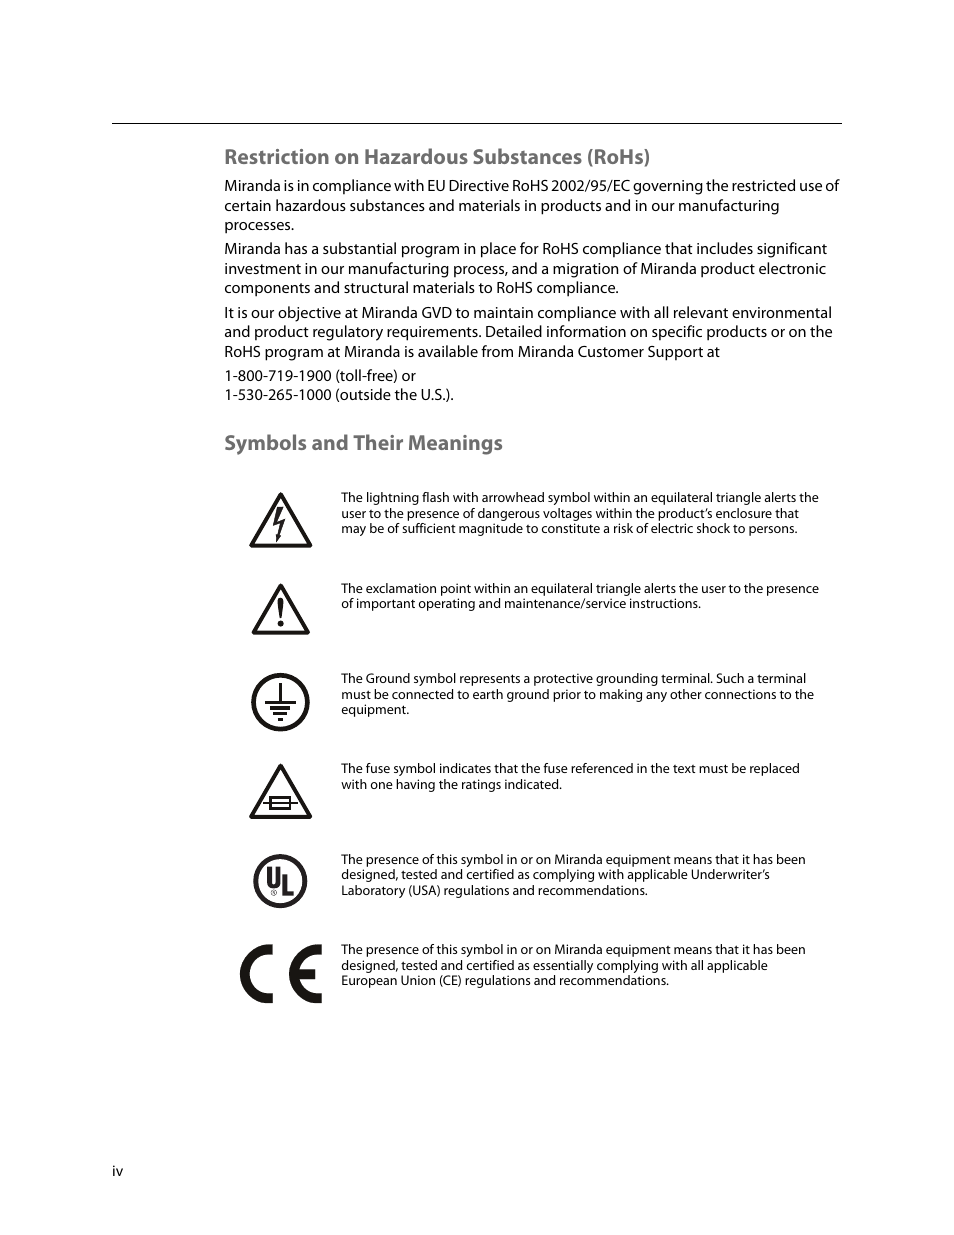 Restriction On Hazardous Substances Rohs Symbols And Their